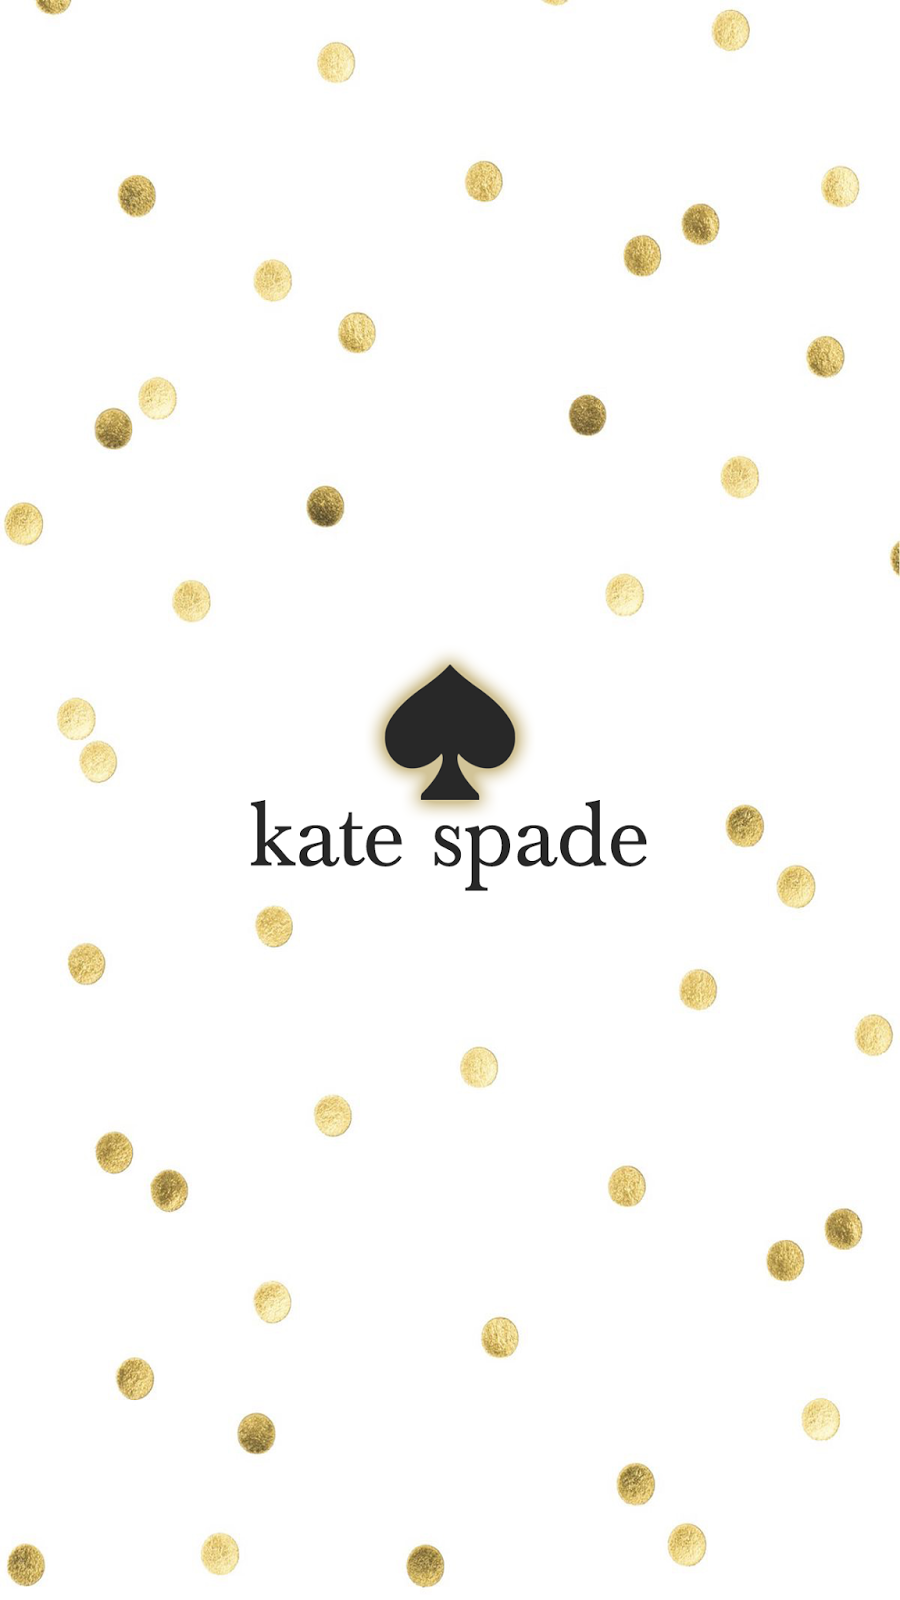 Top Wallpaper Mac Kate Spade - ba1f0d8a45435fa782e64b9a9139330f  Gallery_3216100.png